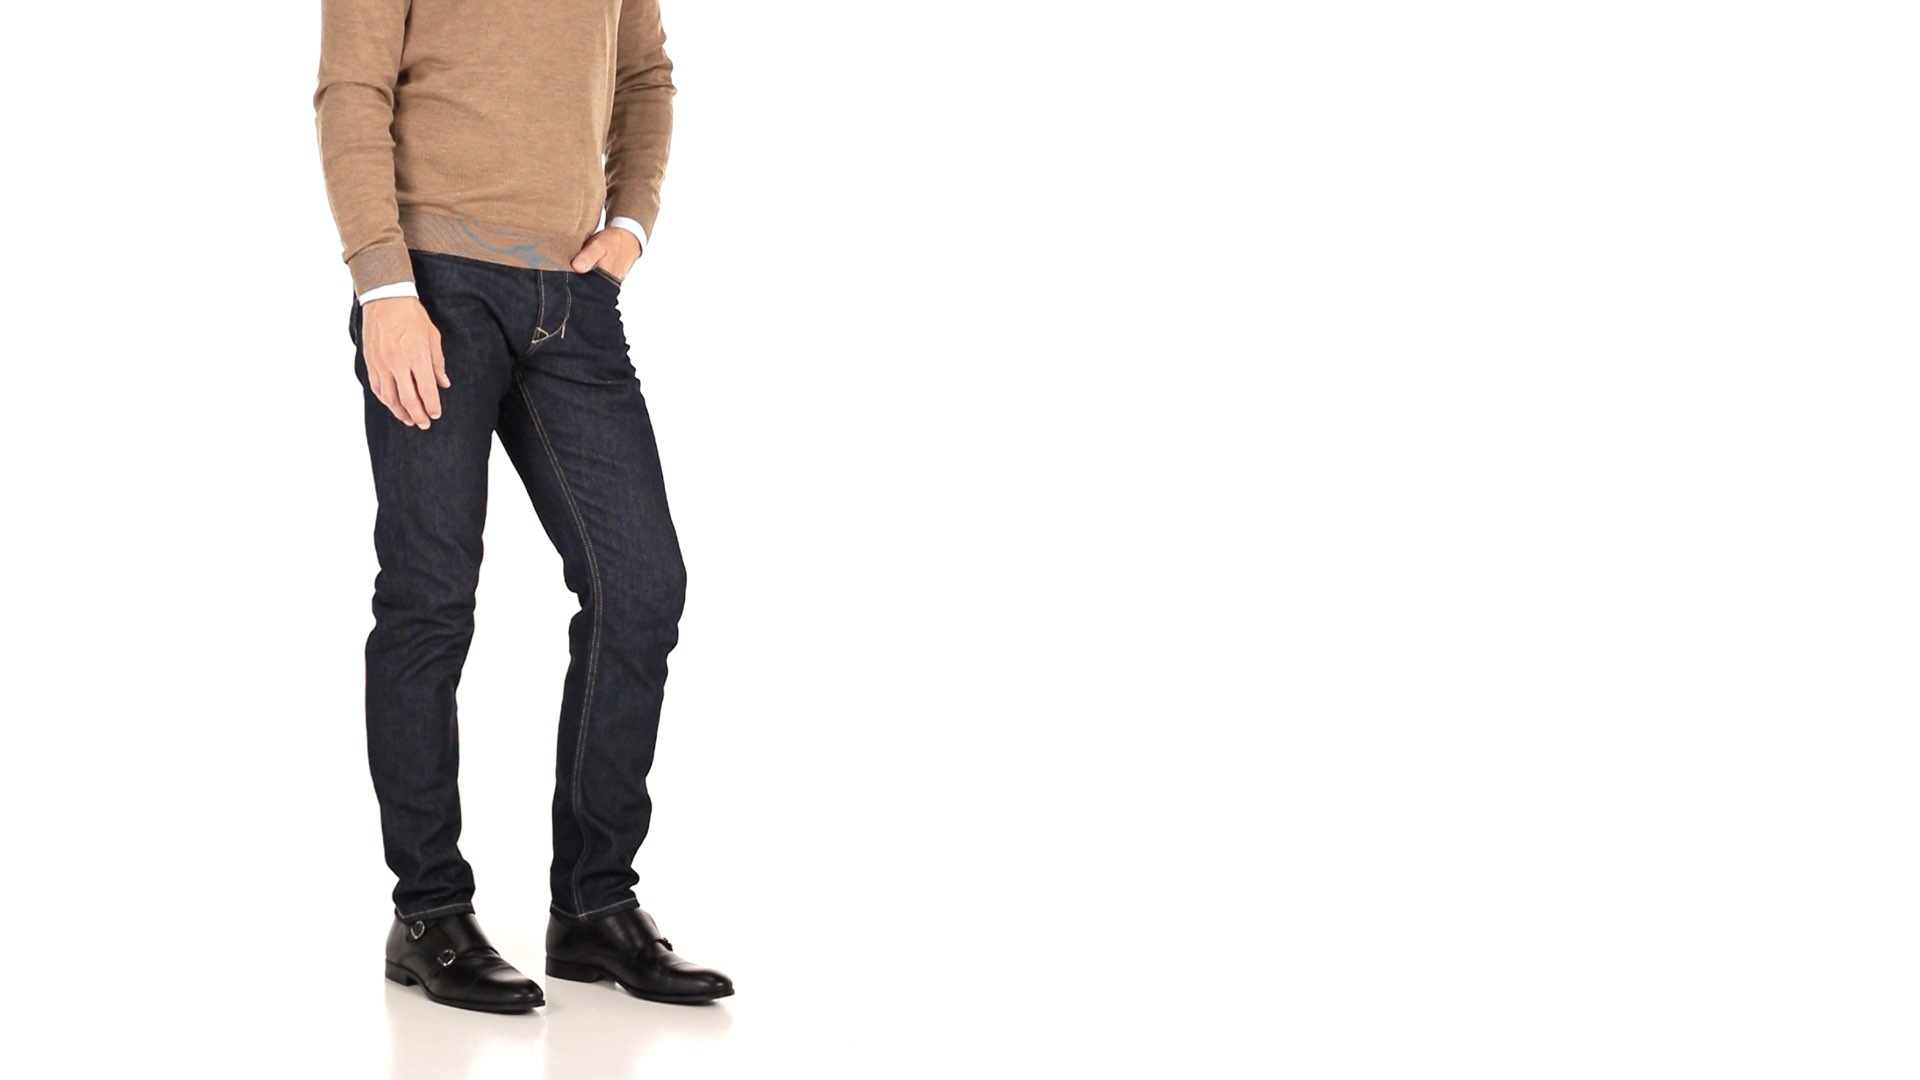 dress - Shoes what to wear with beige jeans video